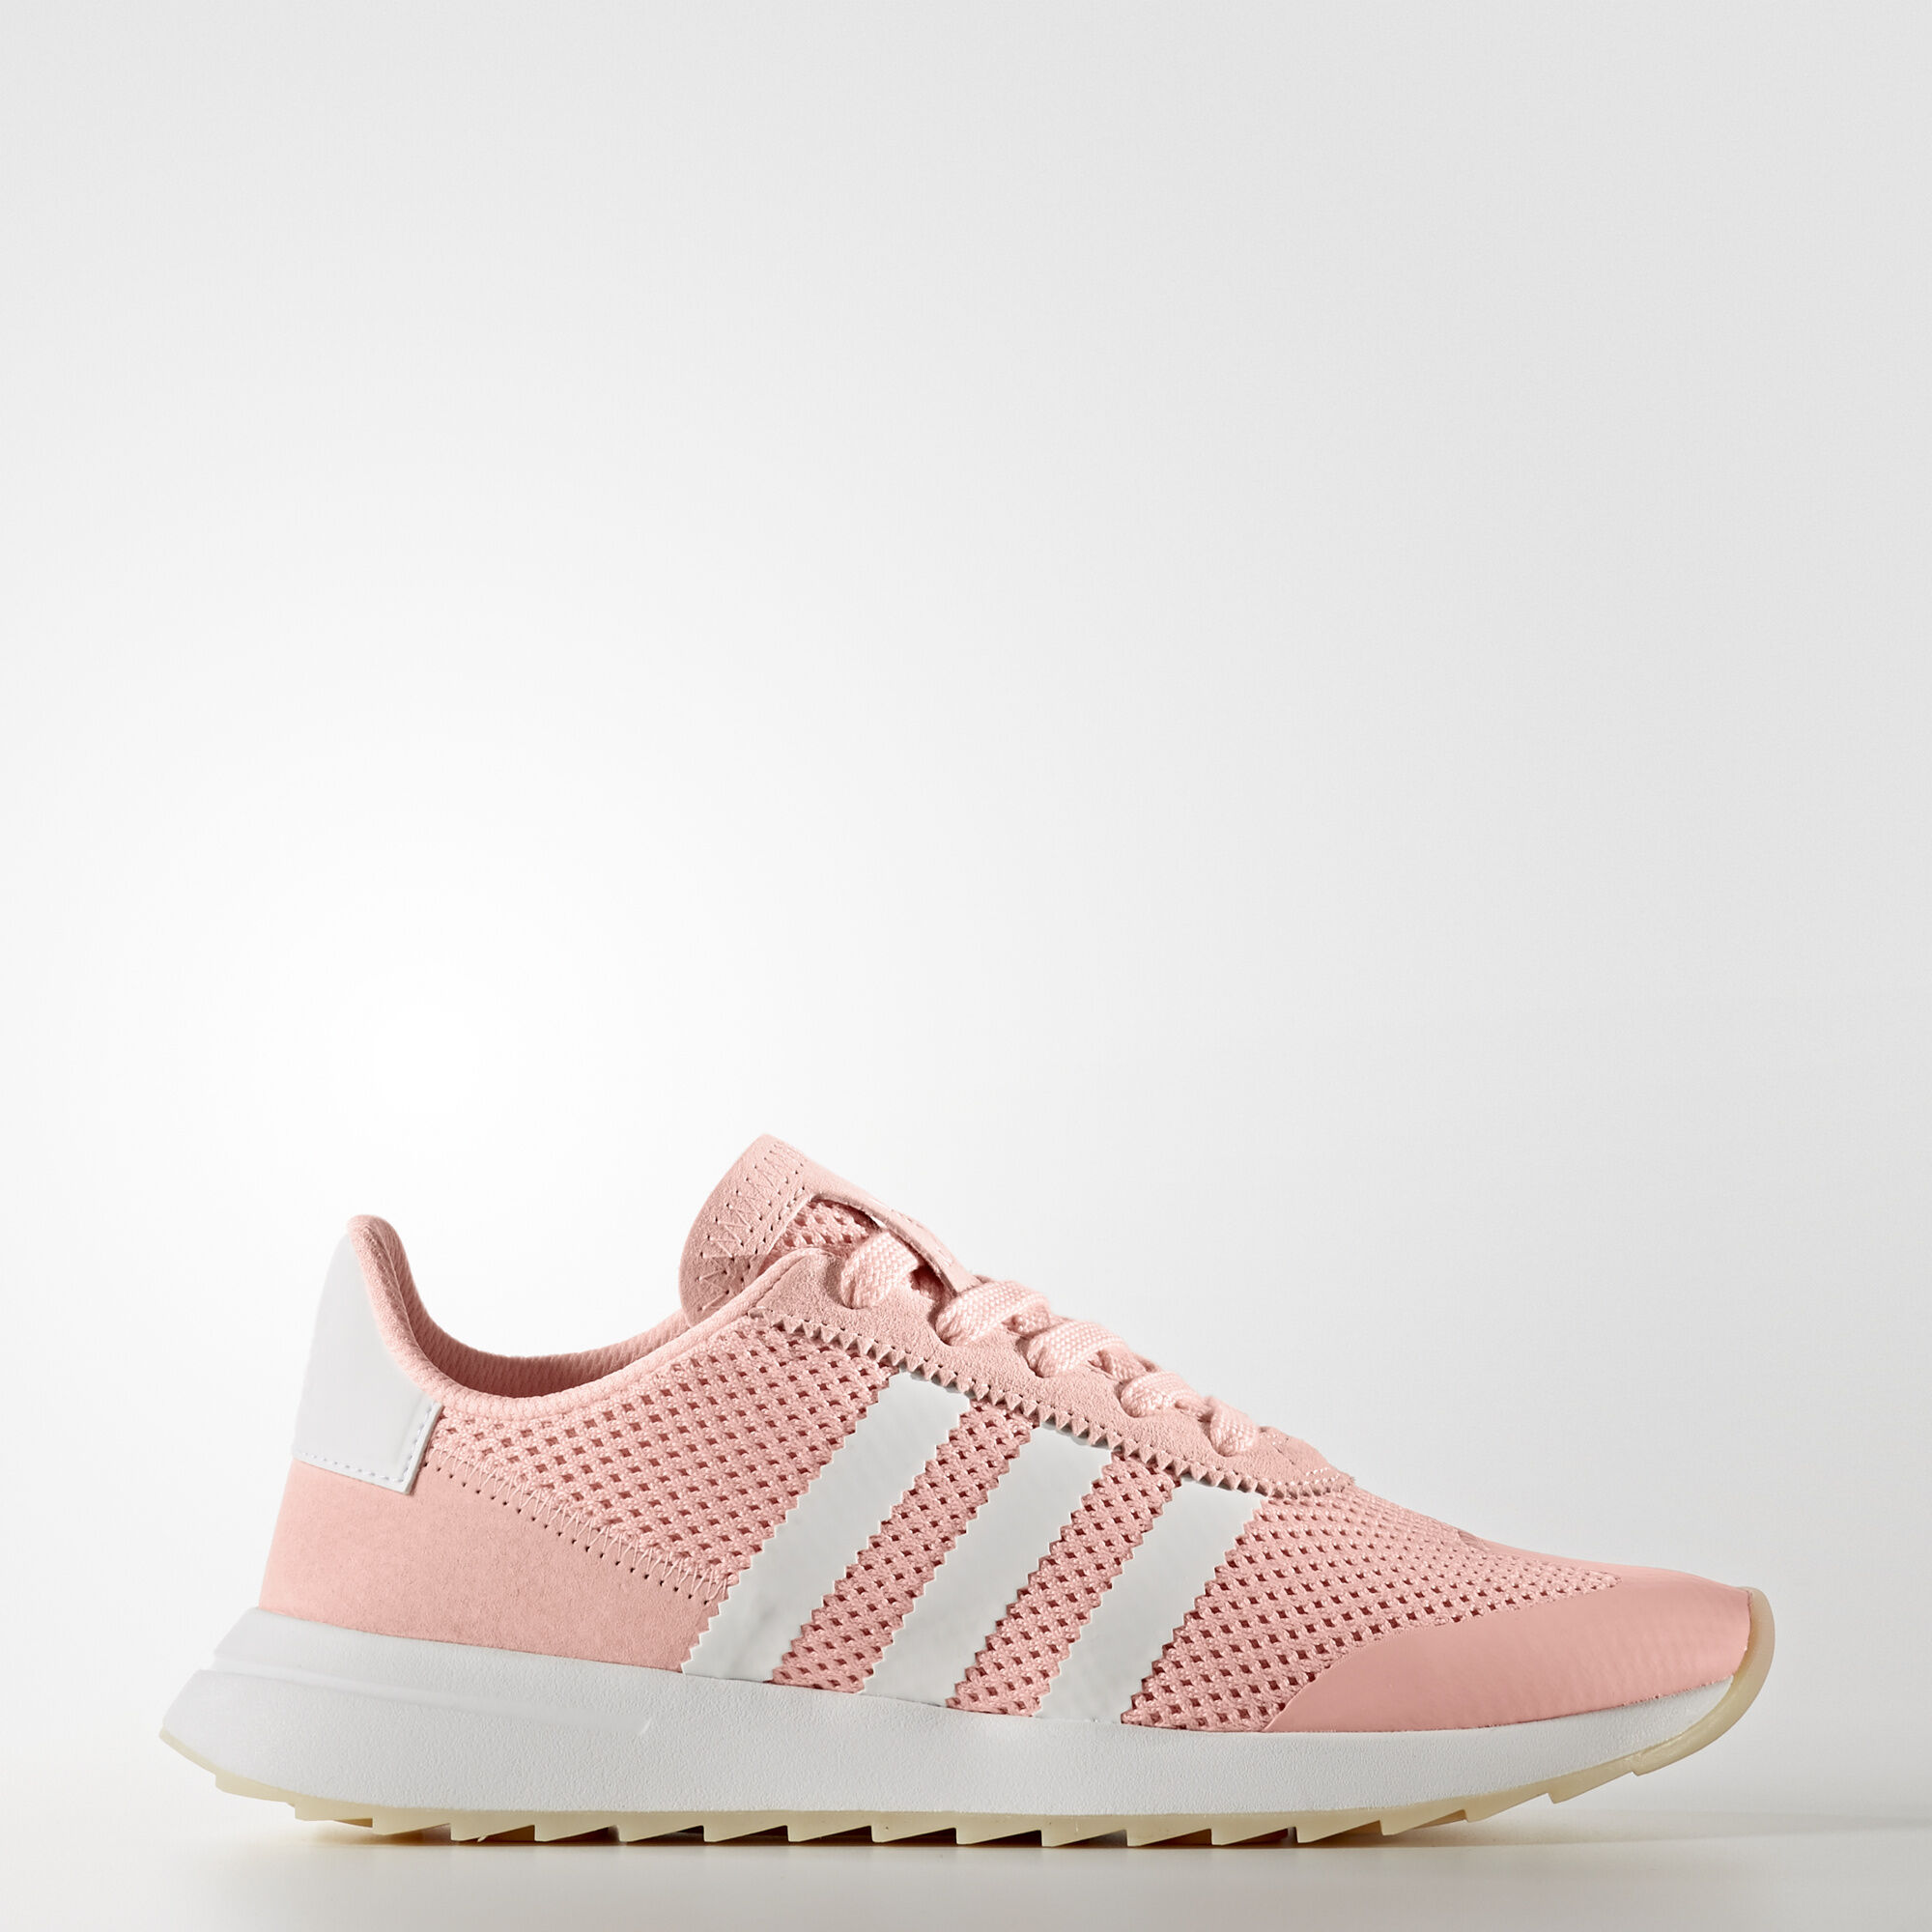 Adidas Shoes White And Pink